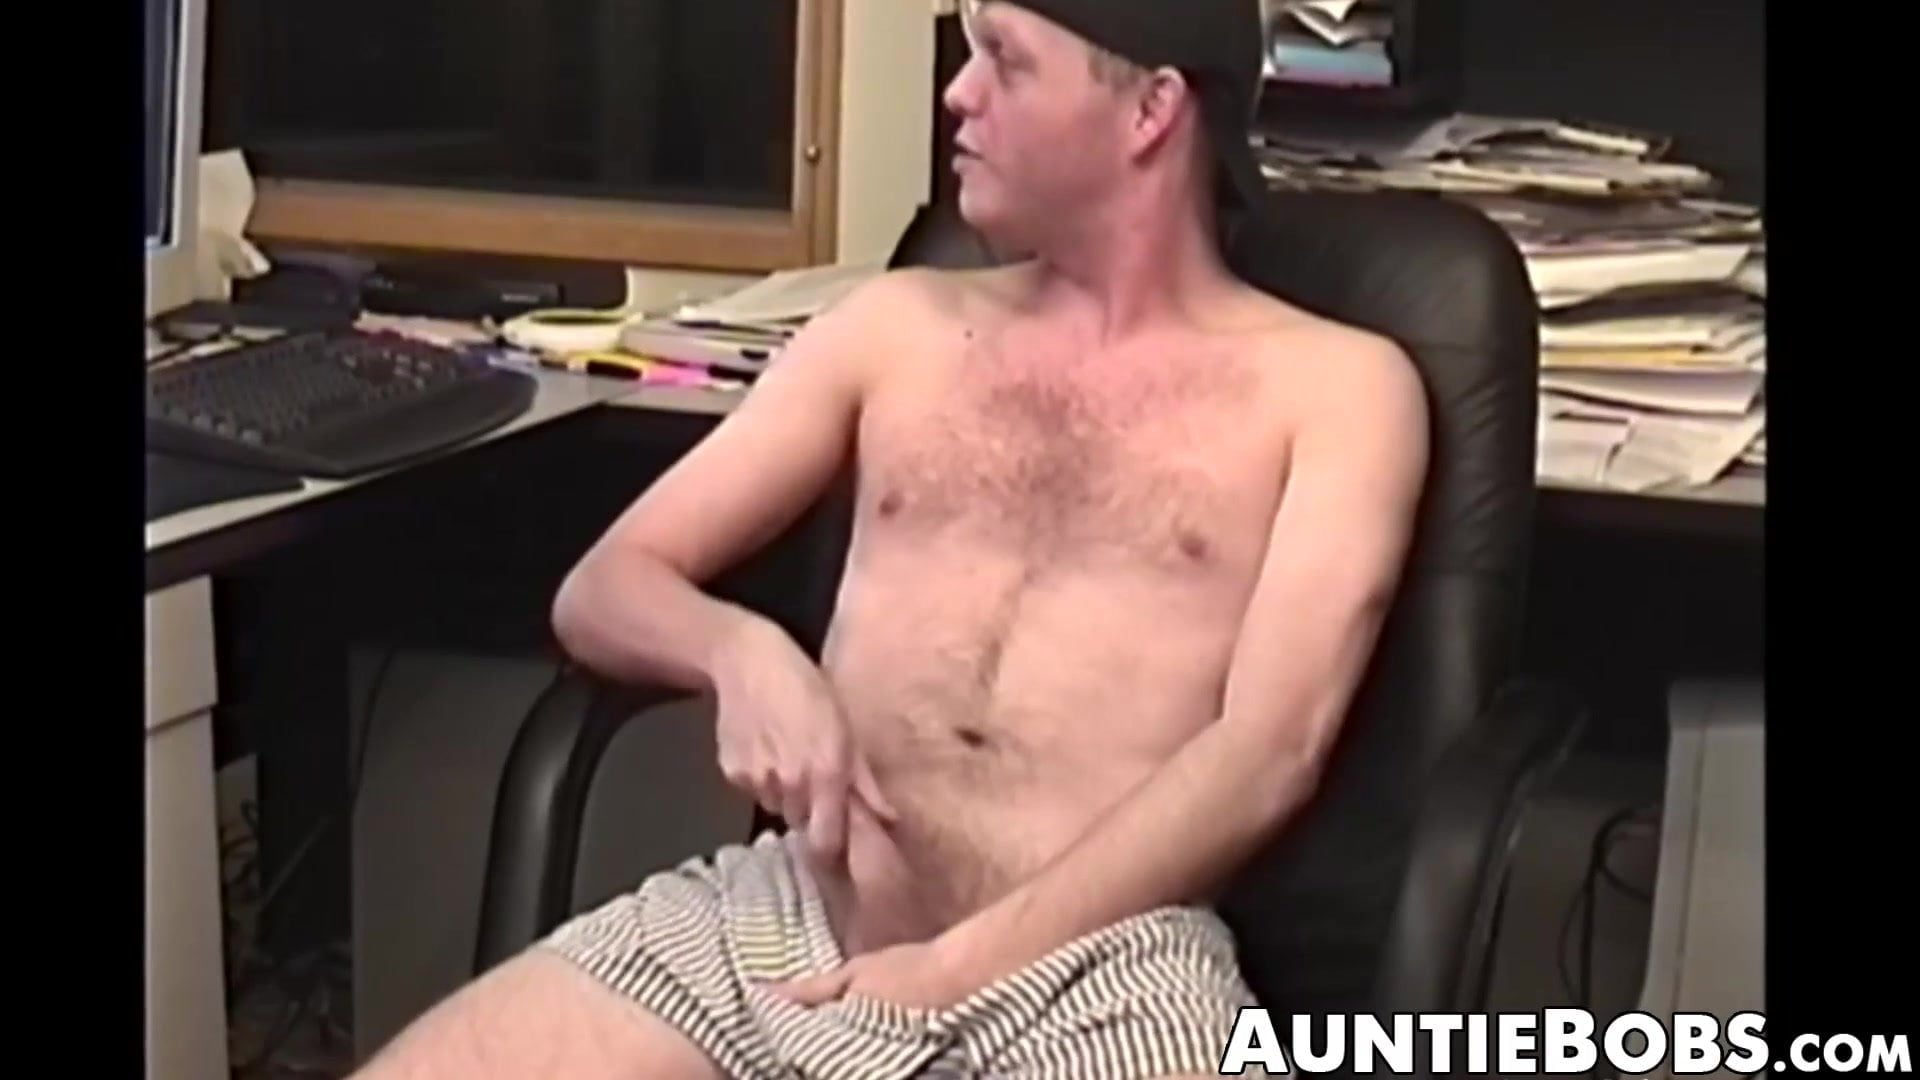 Skinny and bushy dude masturbates in a cool do-it-yourself video